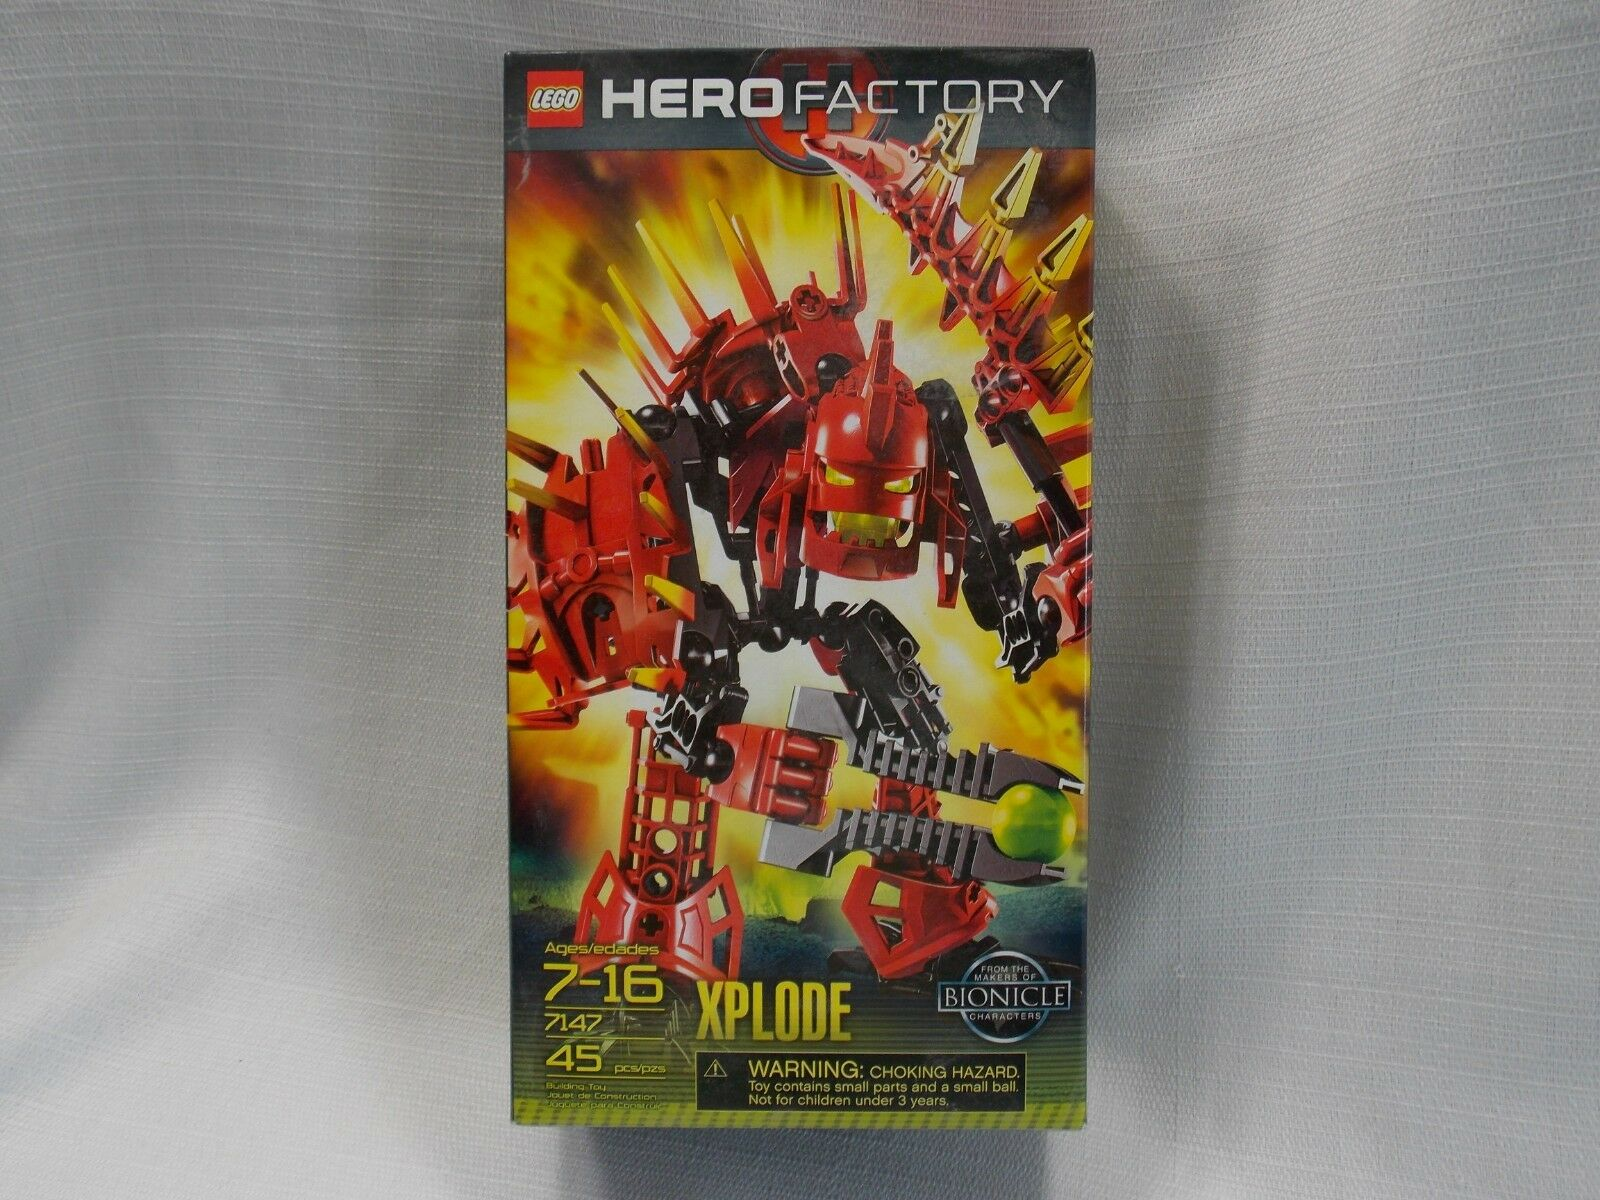 Lego Hero Factory Bionicle 7147 XPLODE New Factory Sealed 2010